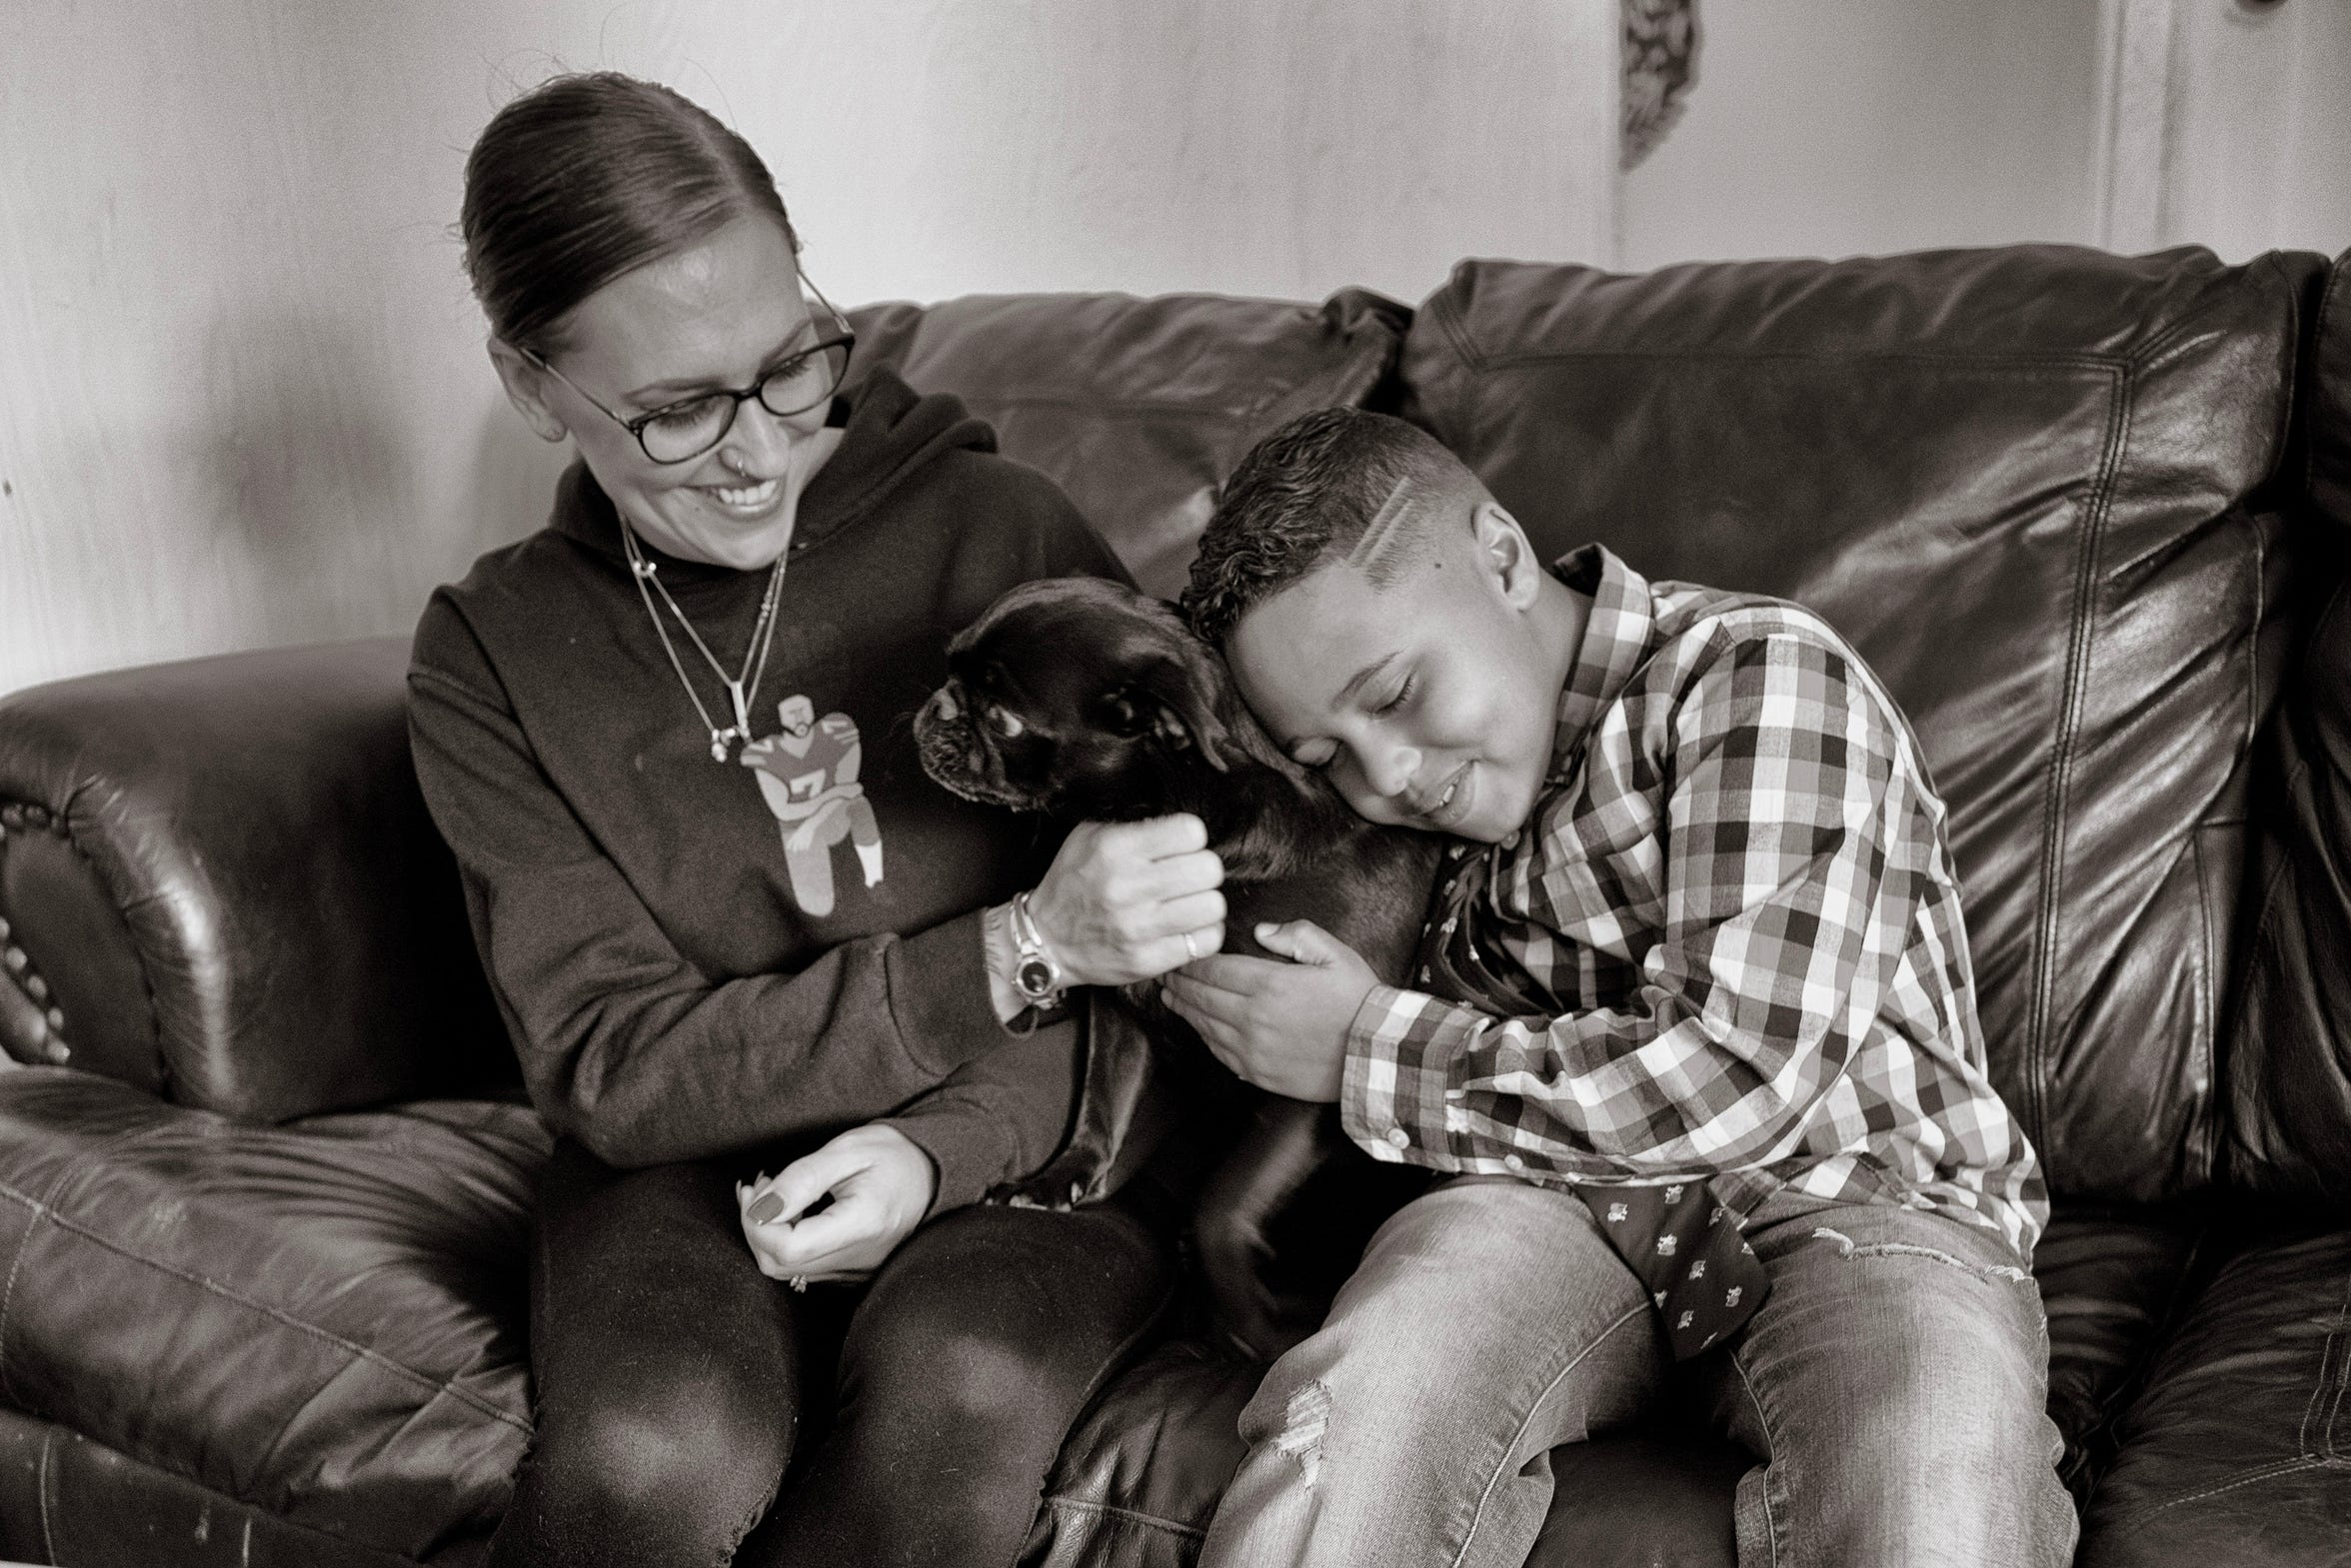 Jamari Nelson, 7, with his dog, Shadow, and his mom, Agatha Cooper. Jamari enjoys taking Shadow, a two-year-old pug, on walks through his neighborhood.